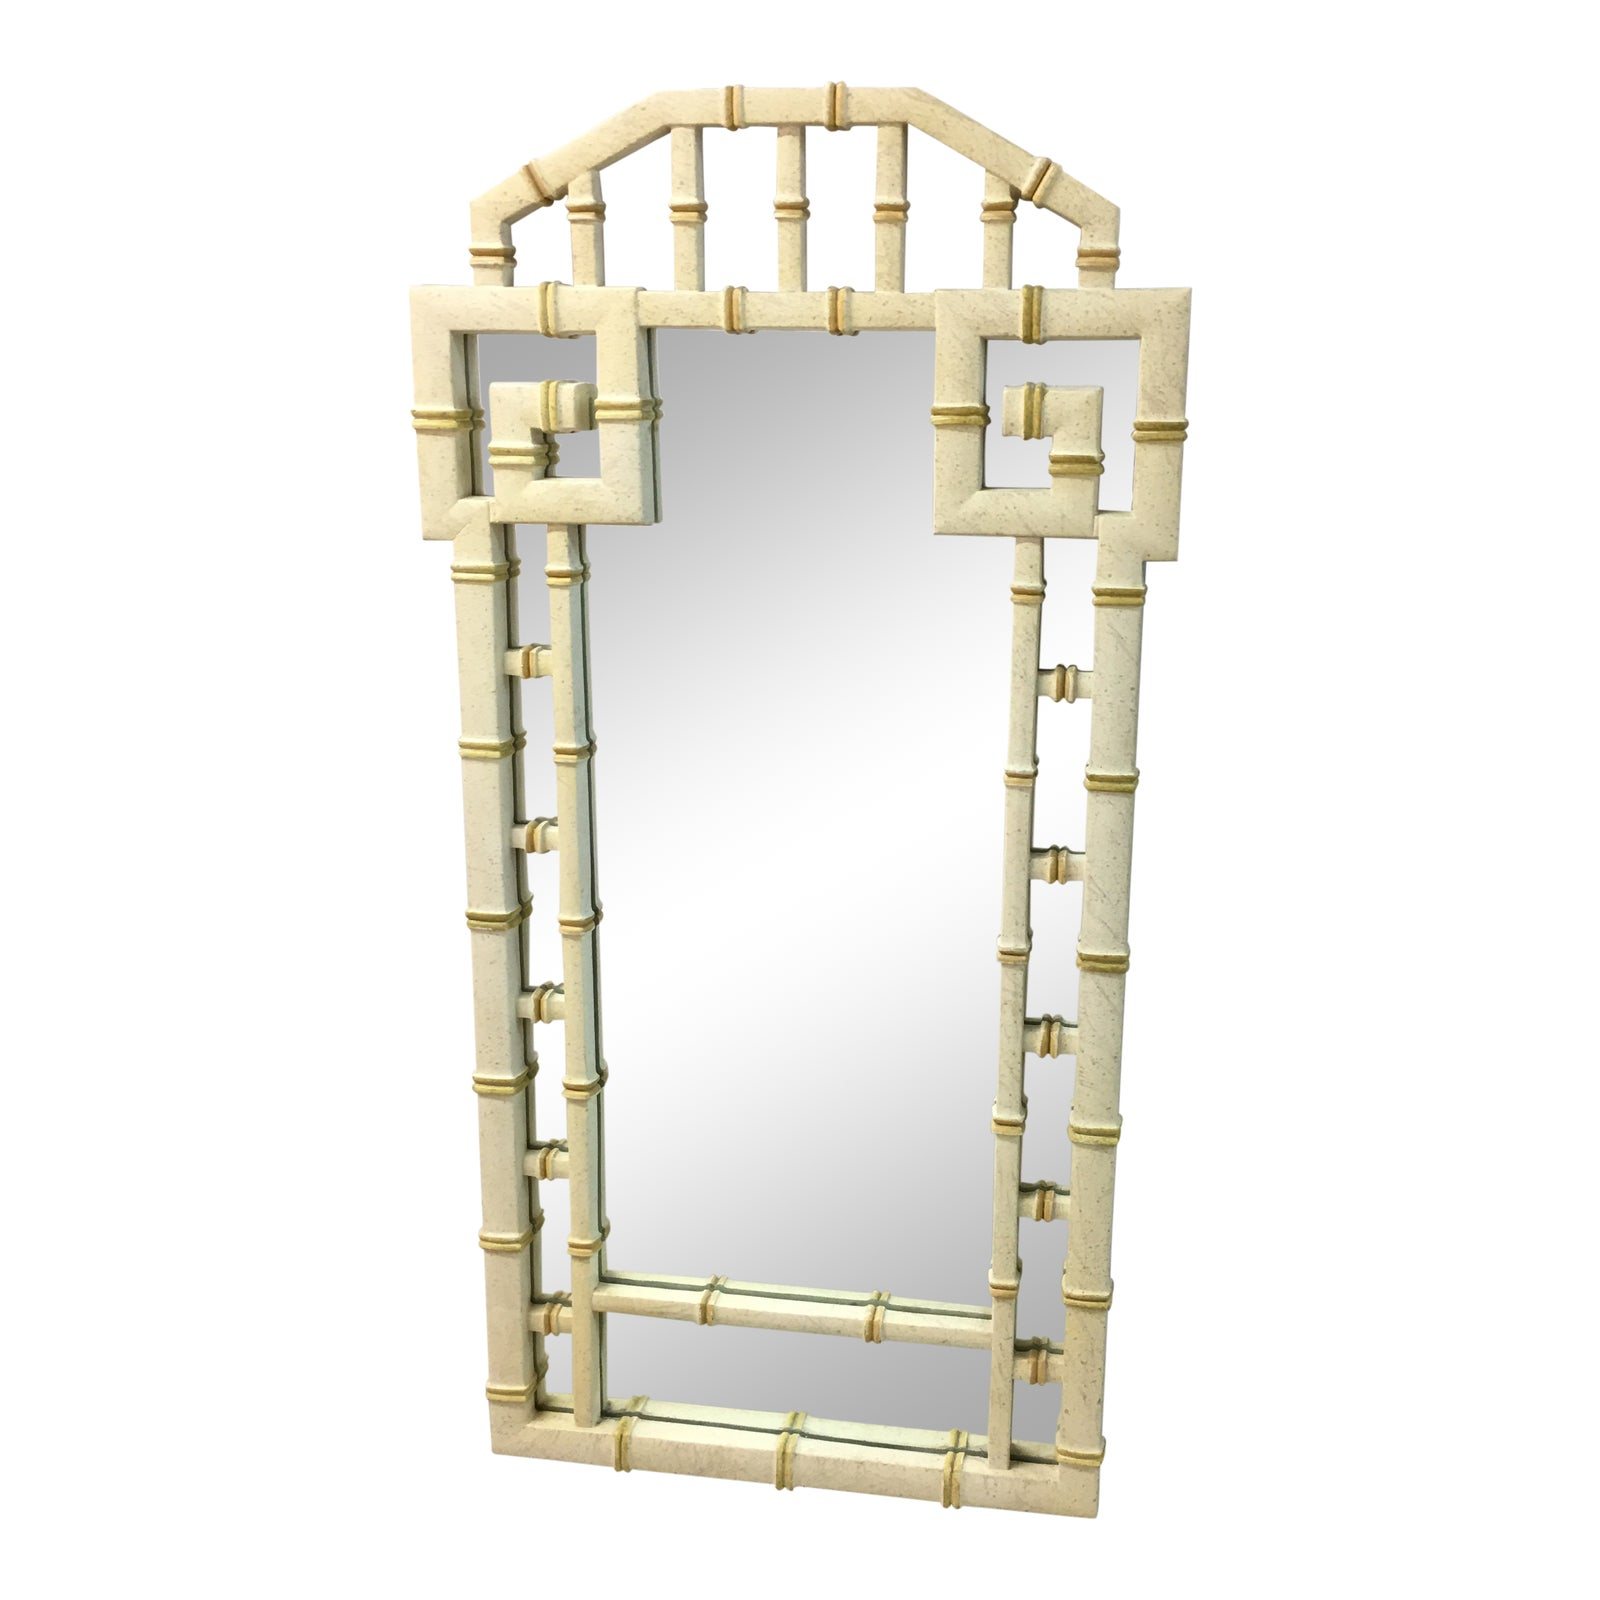 Vintage labarge style white and gold greek key faux bamboo mirror chairish